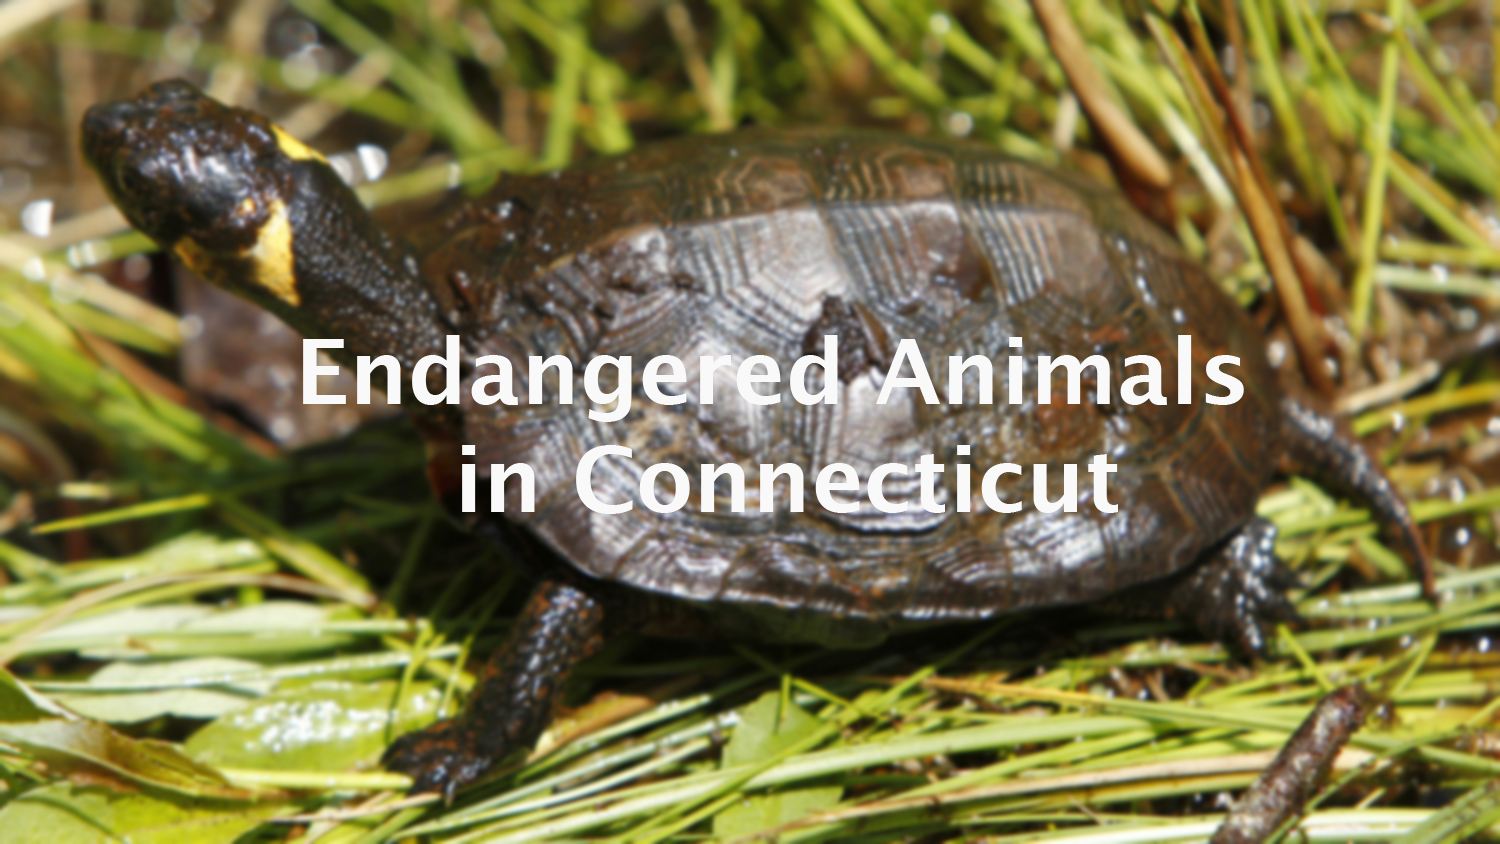 These are the endangered species you might encounter in CT